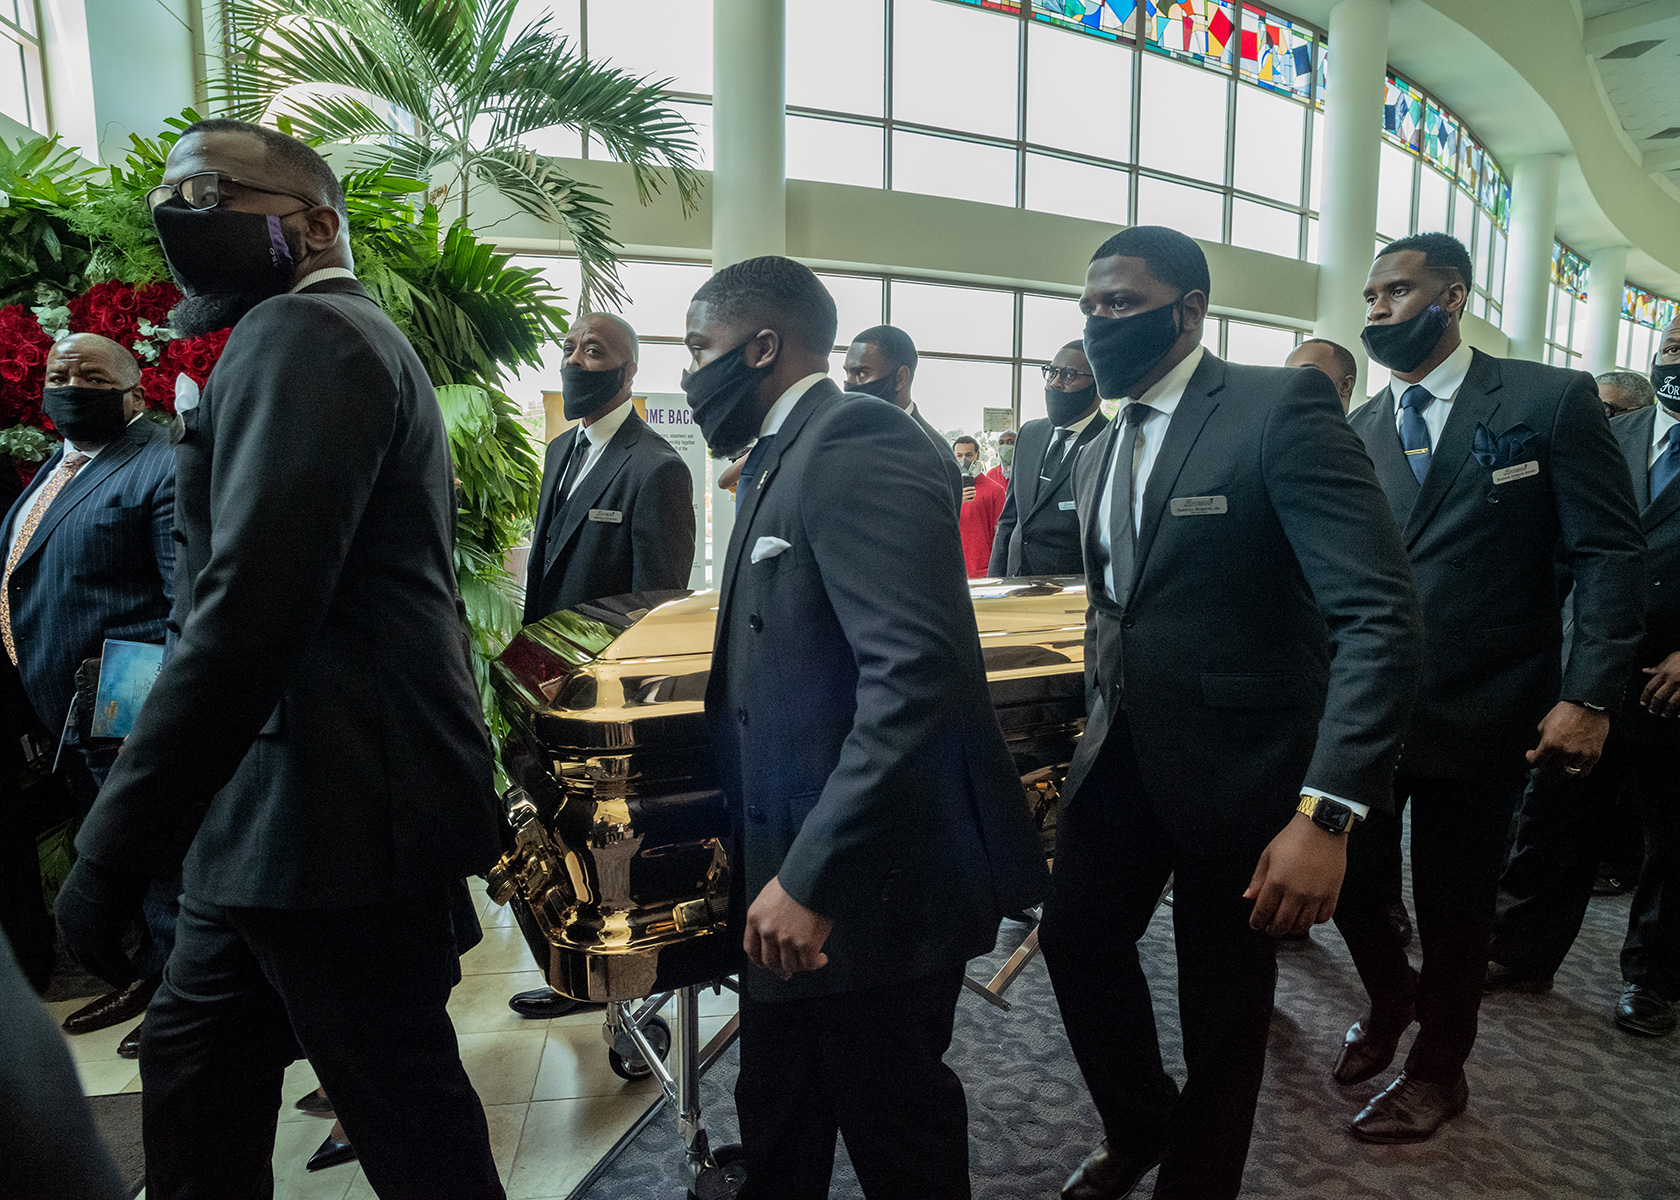 Pallbearers transport George Floyd's casket at The Fountain of Praise Church on June 9.